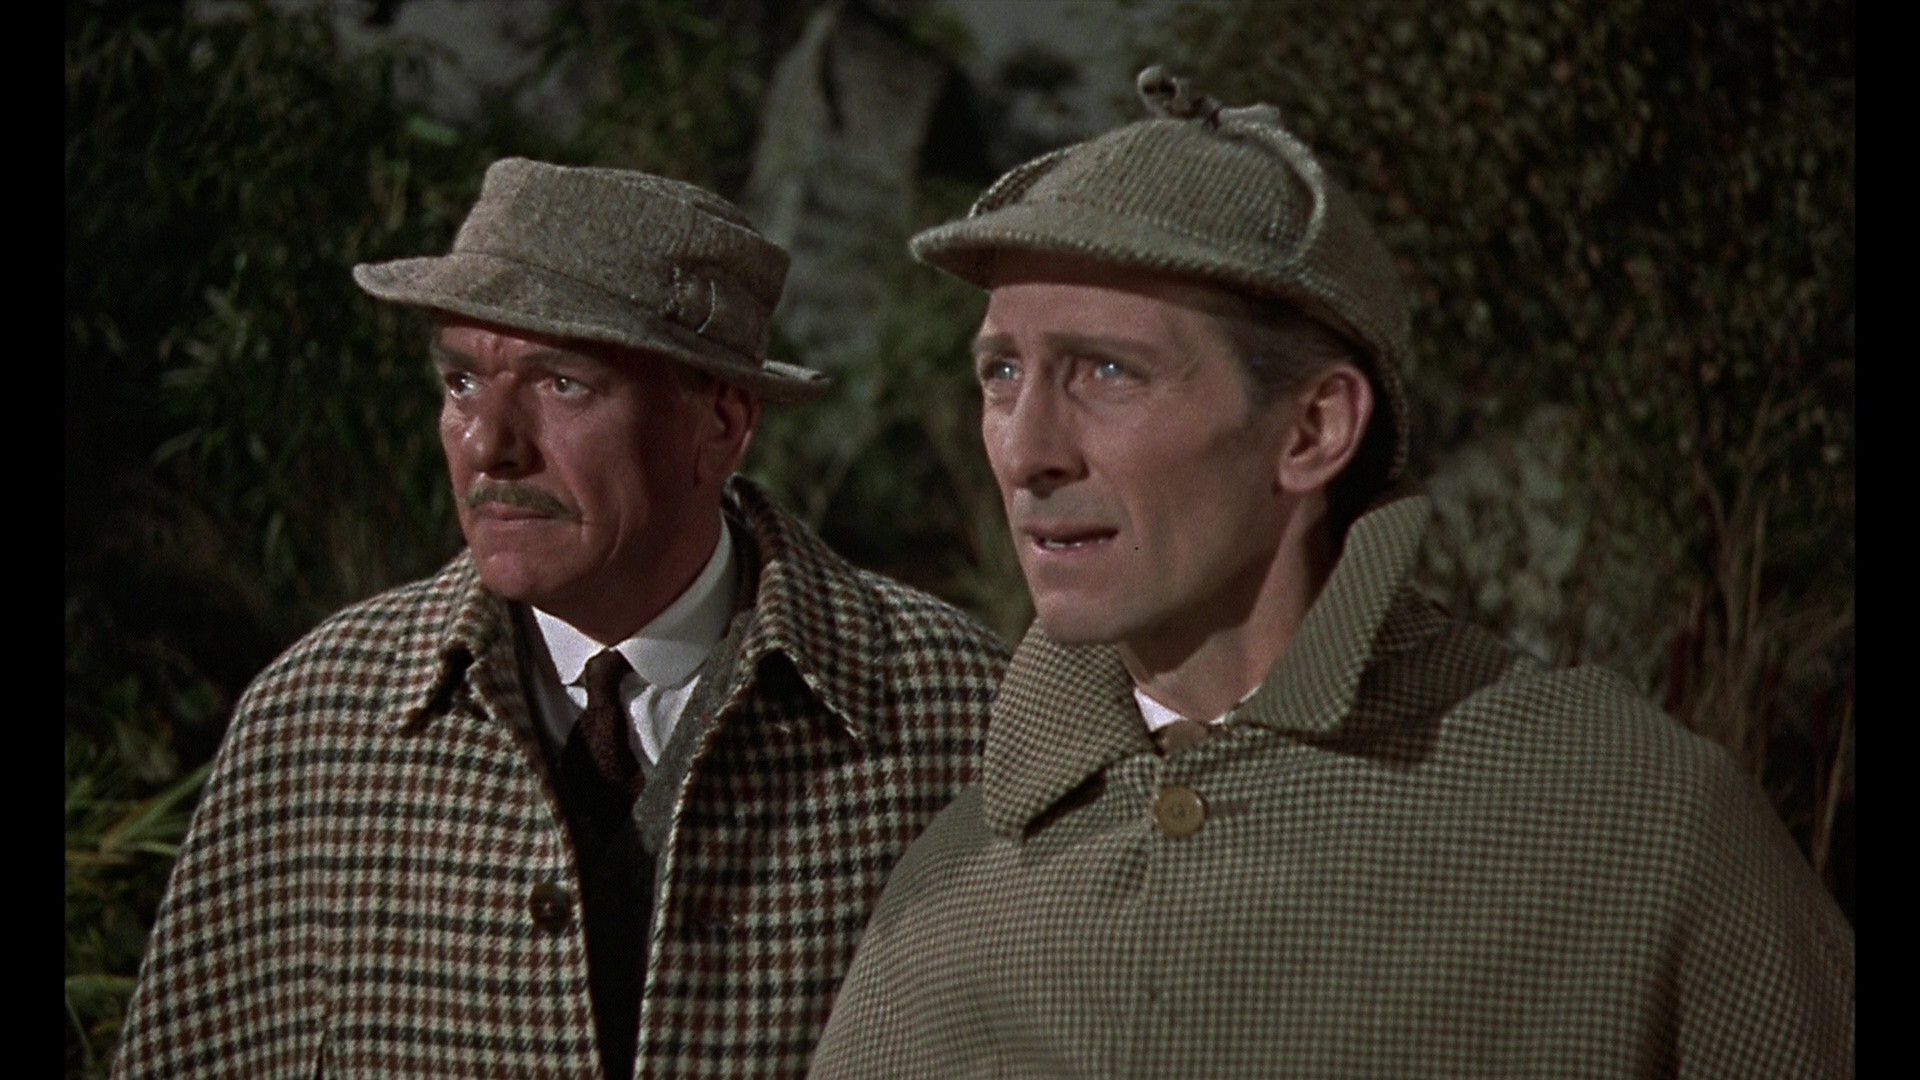 The Hound of the Baskervilles (1959) – Horror, Mystery